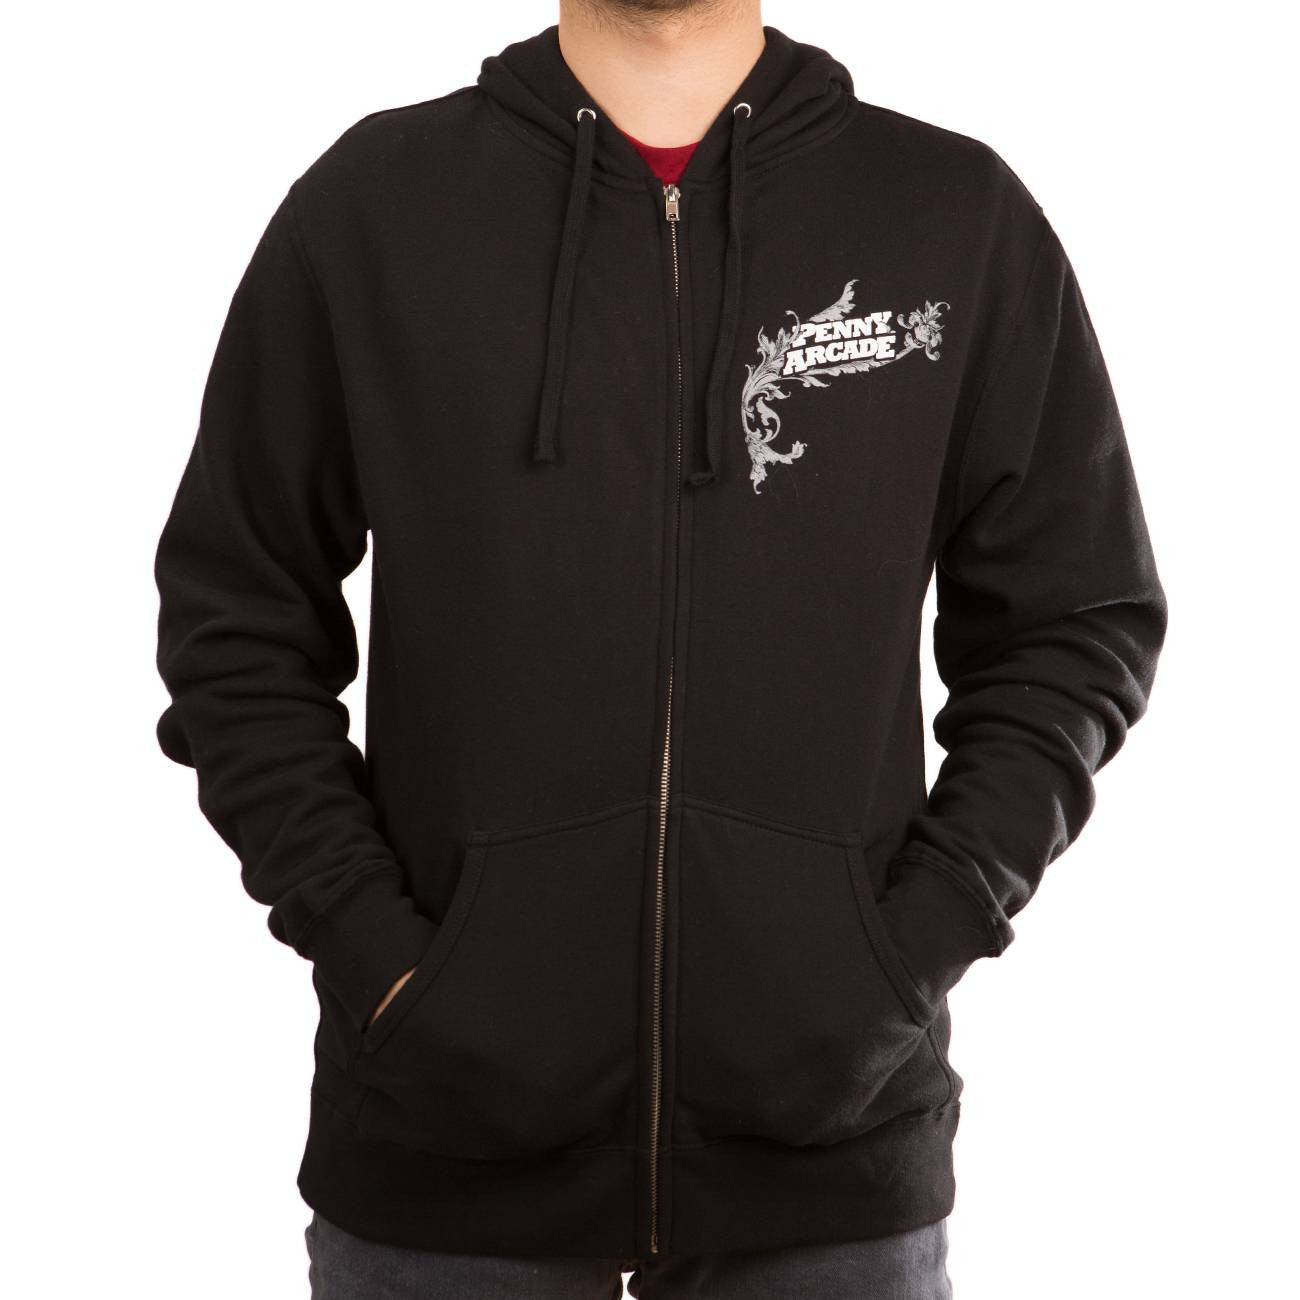 The Black Mantle (Zip Up)